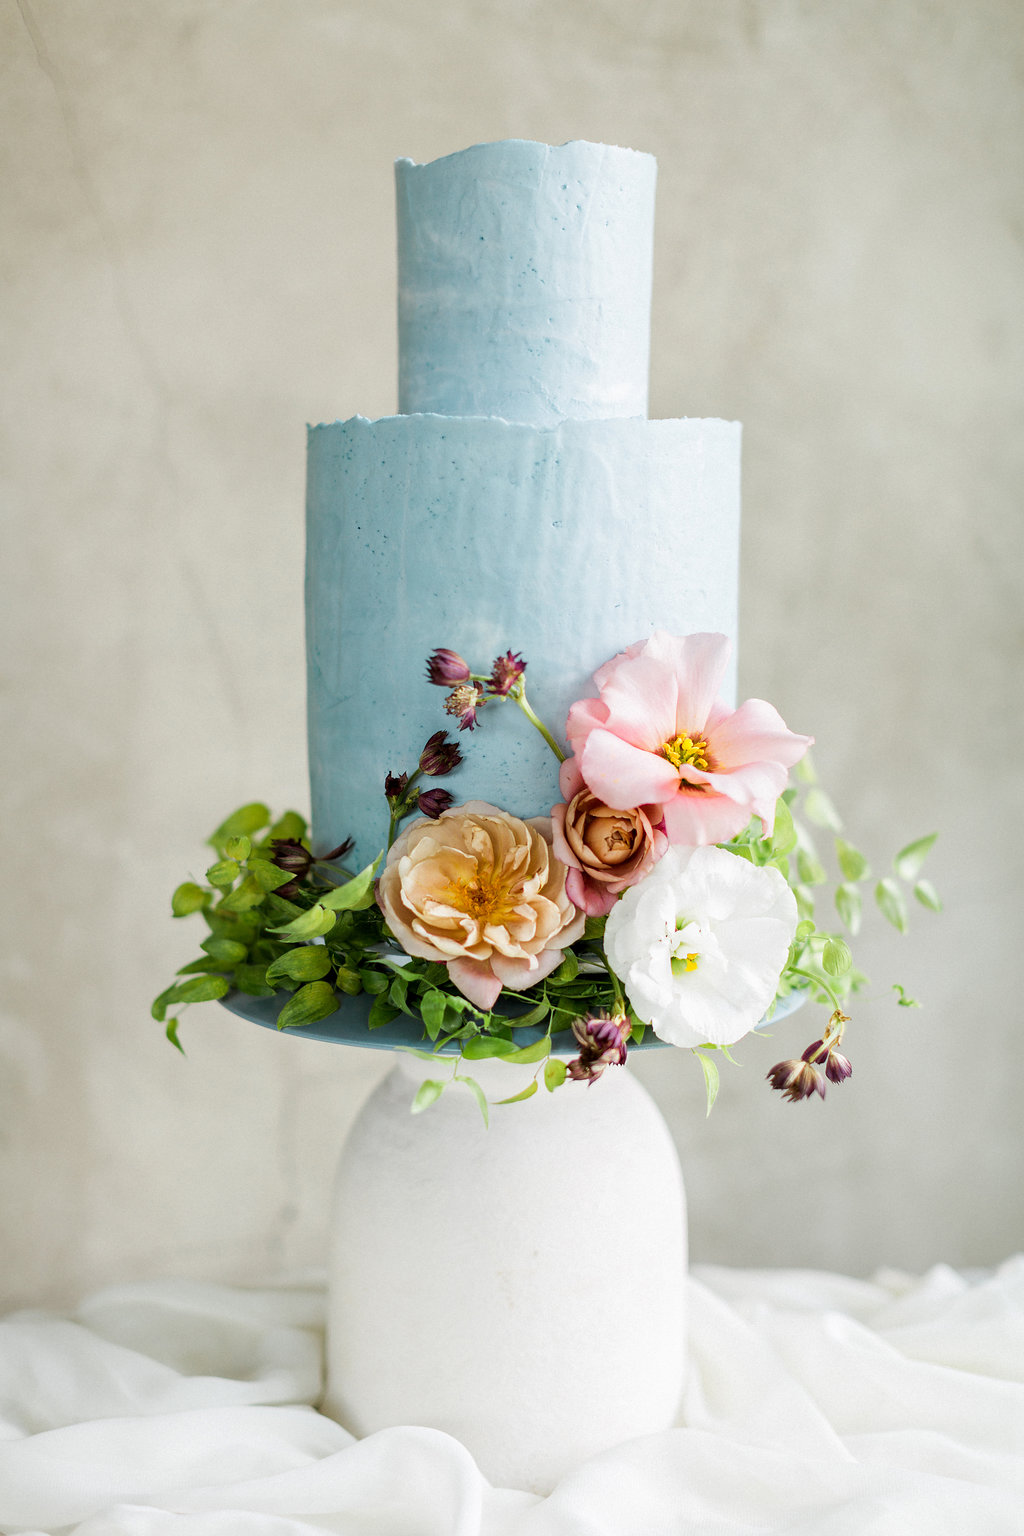 soft blue wedding cakes with flowers - https://ruffledblog.com/cloudy-day-wedding-inspiration-with-a-hand-painted-bridal-gown